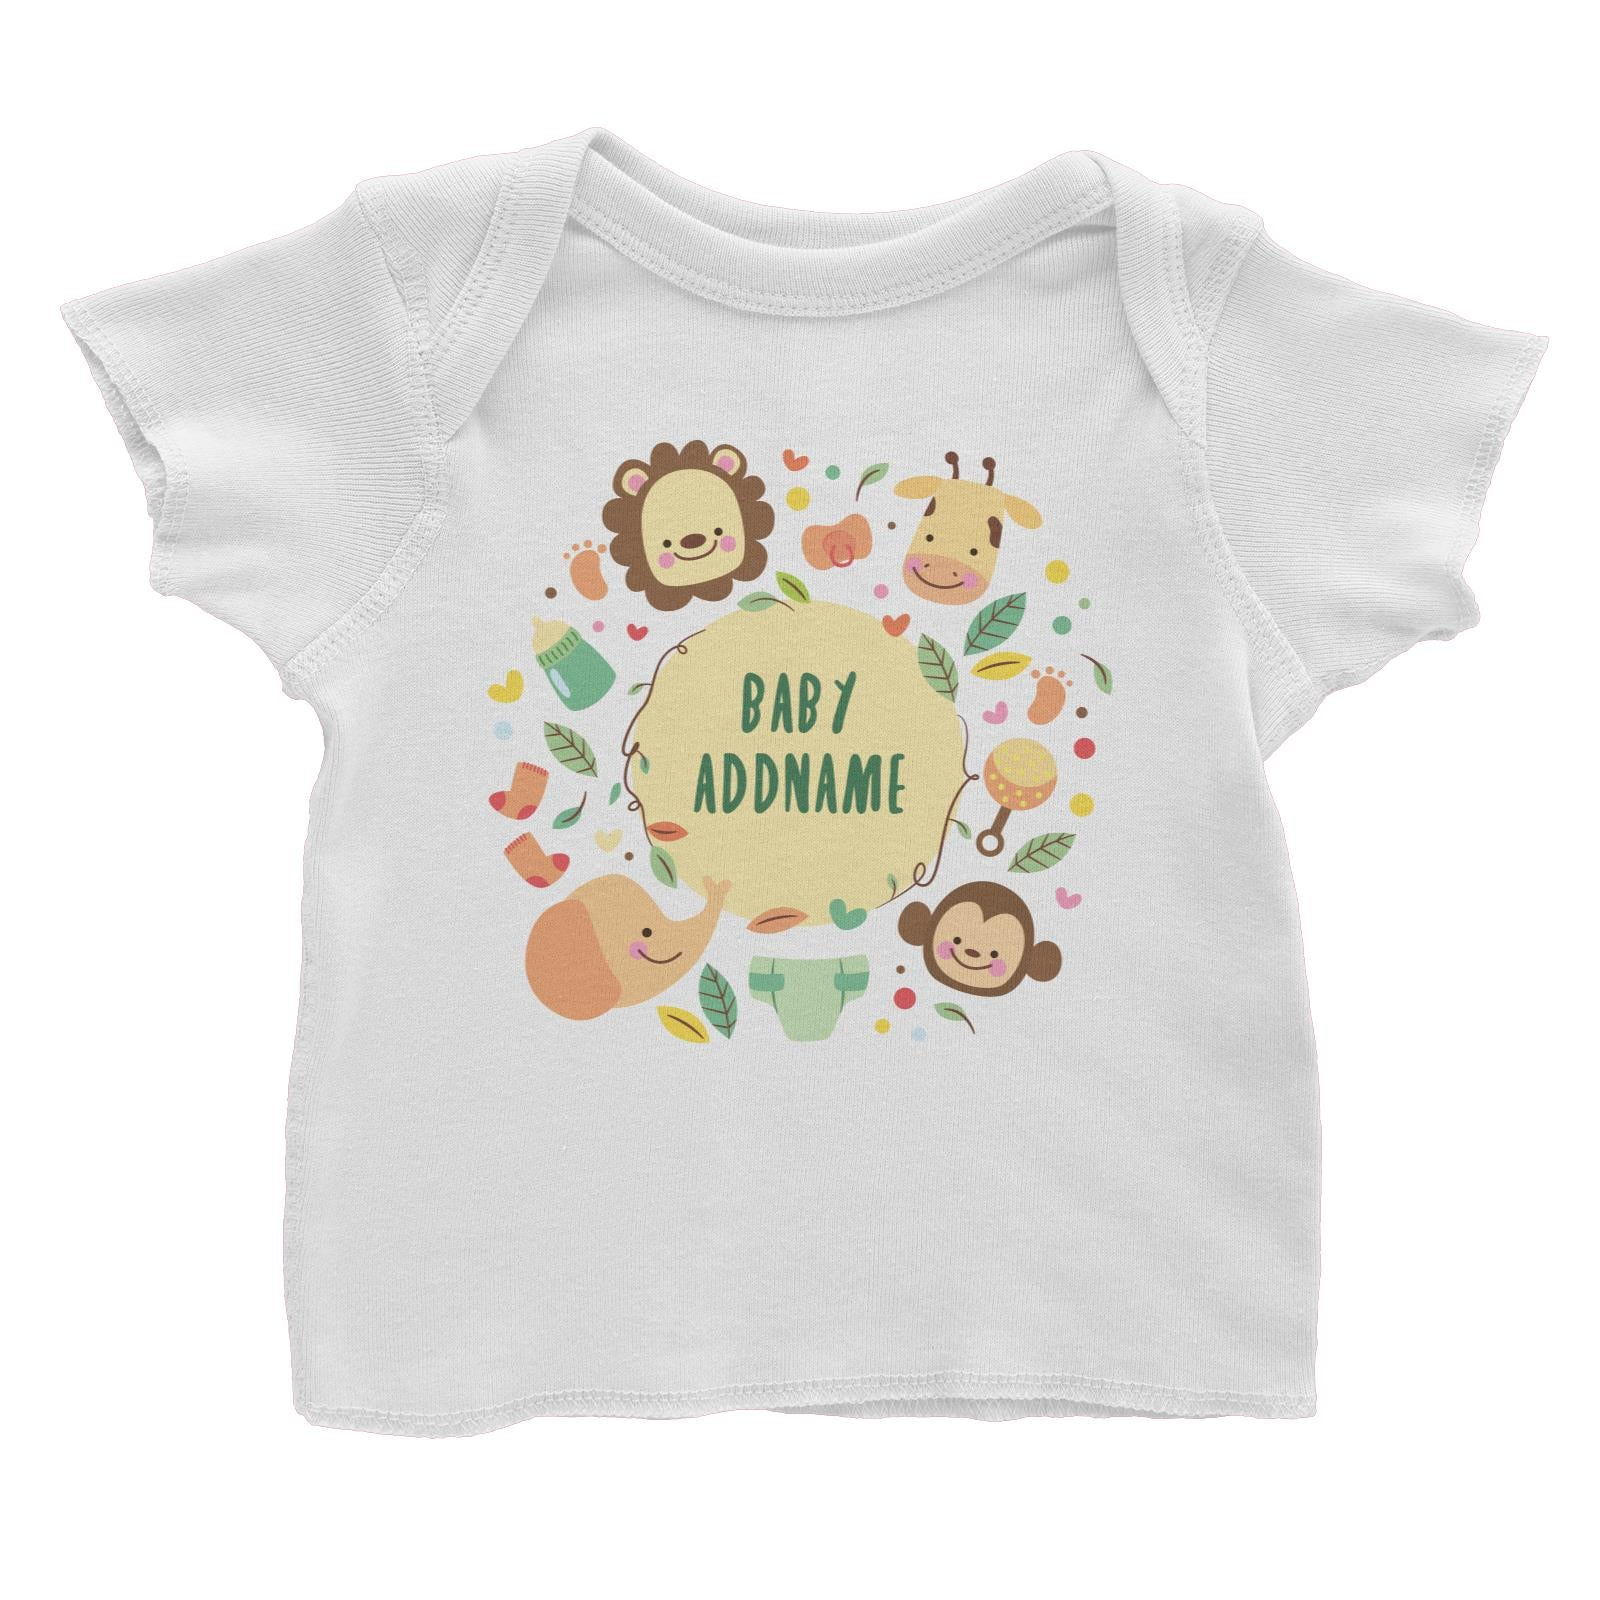 Baby Safari Animals with Addname Baby T-Shirt